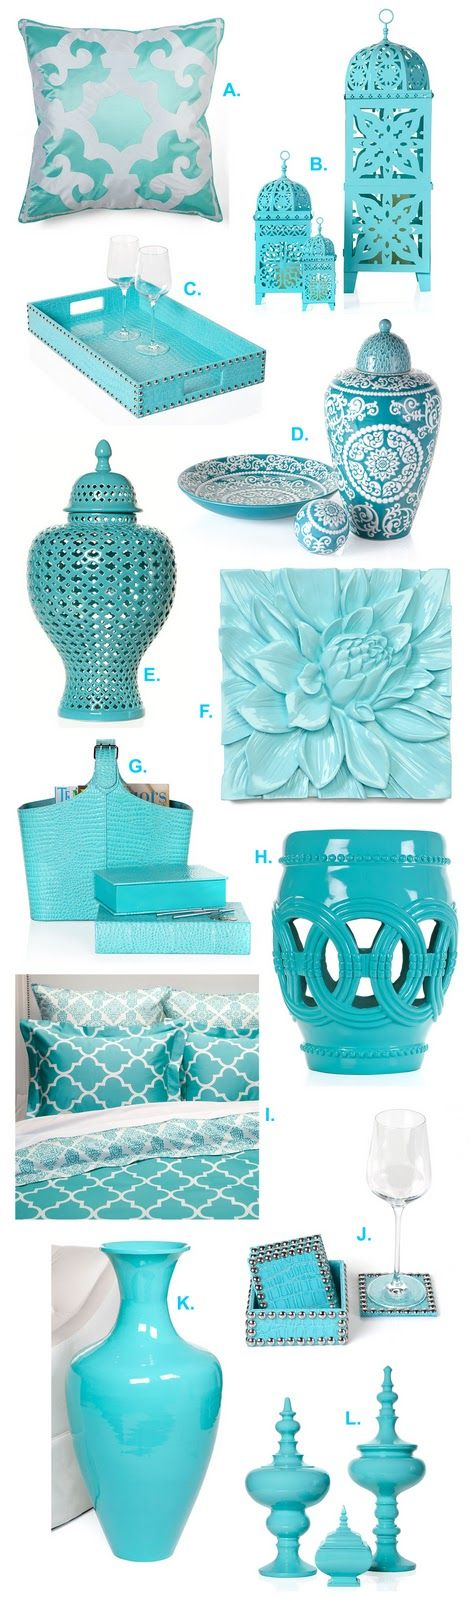 Besotted with turquoise this year!